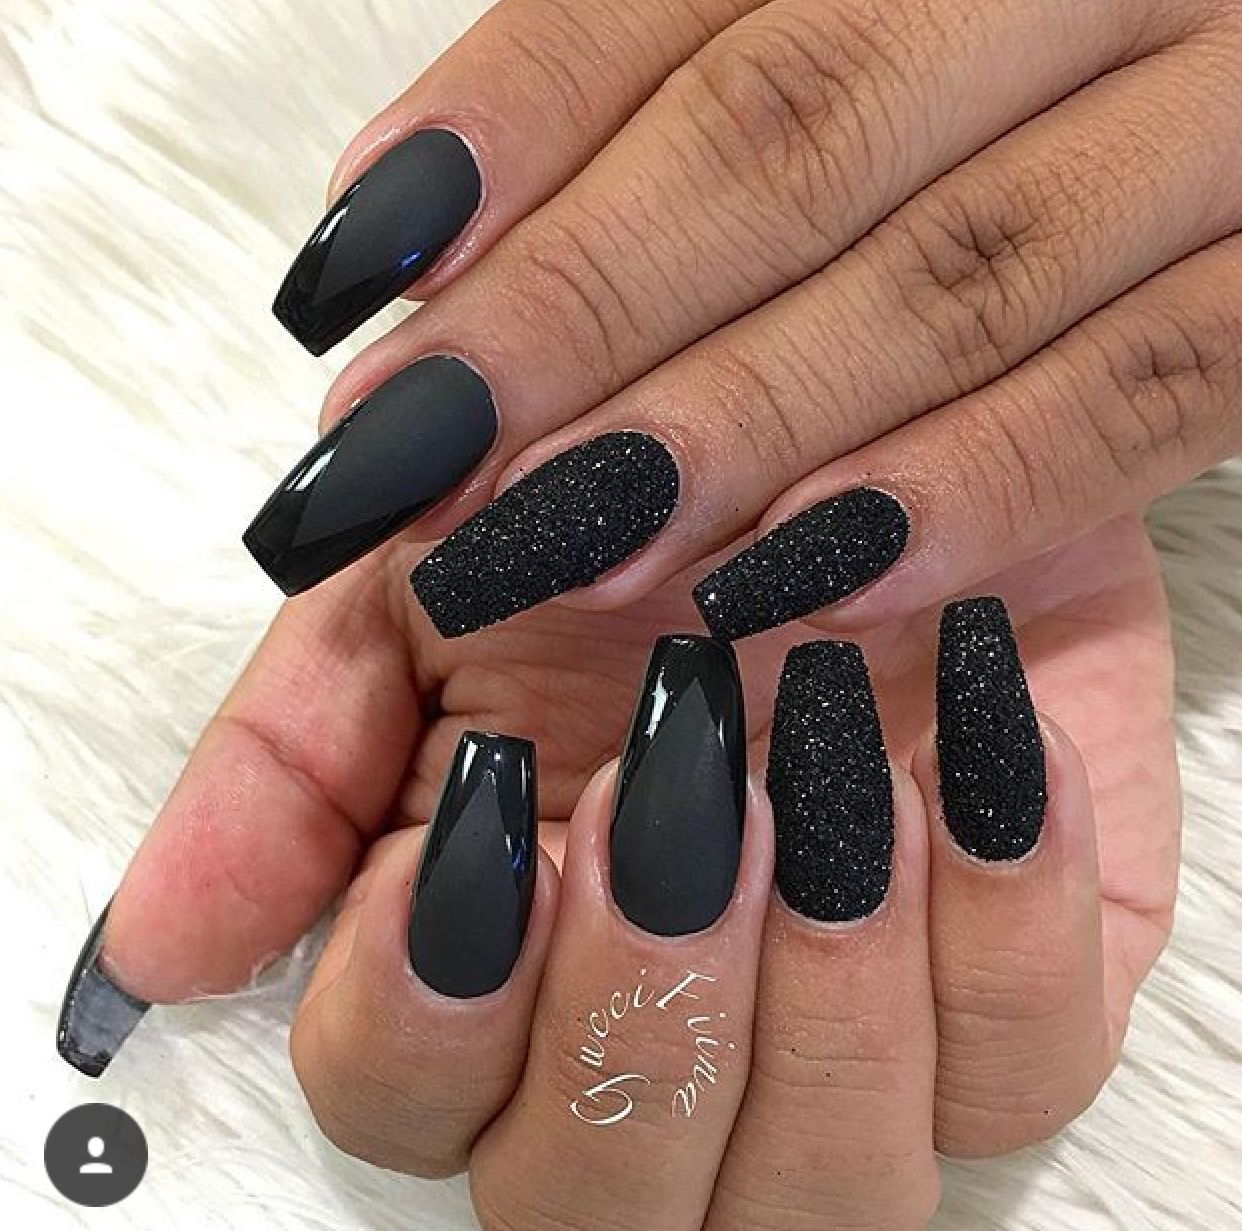 Pin by Tish on Nails | Pinterest | Manicure